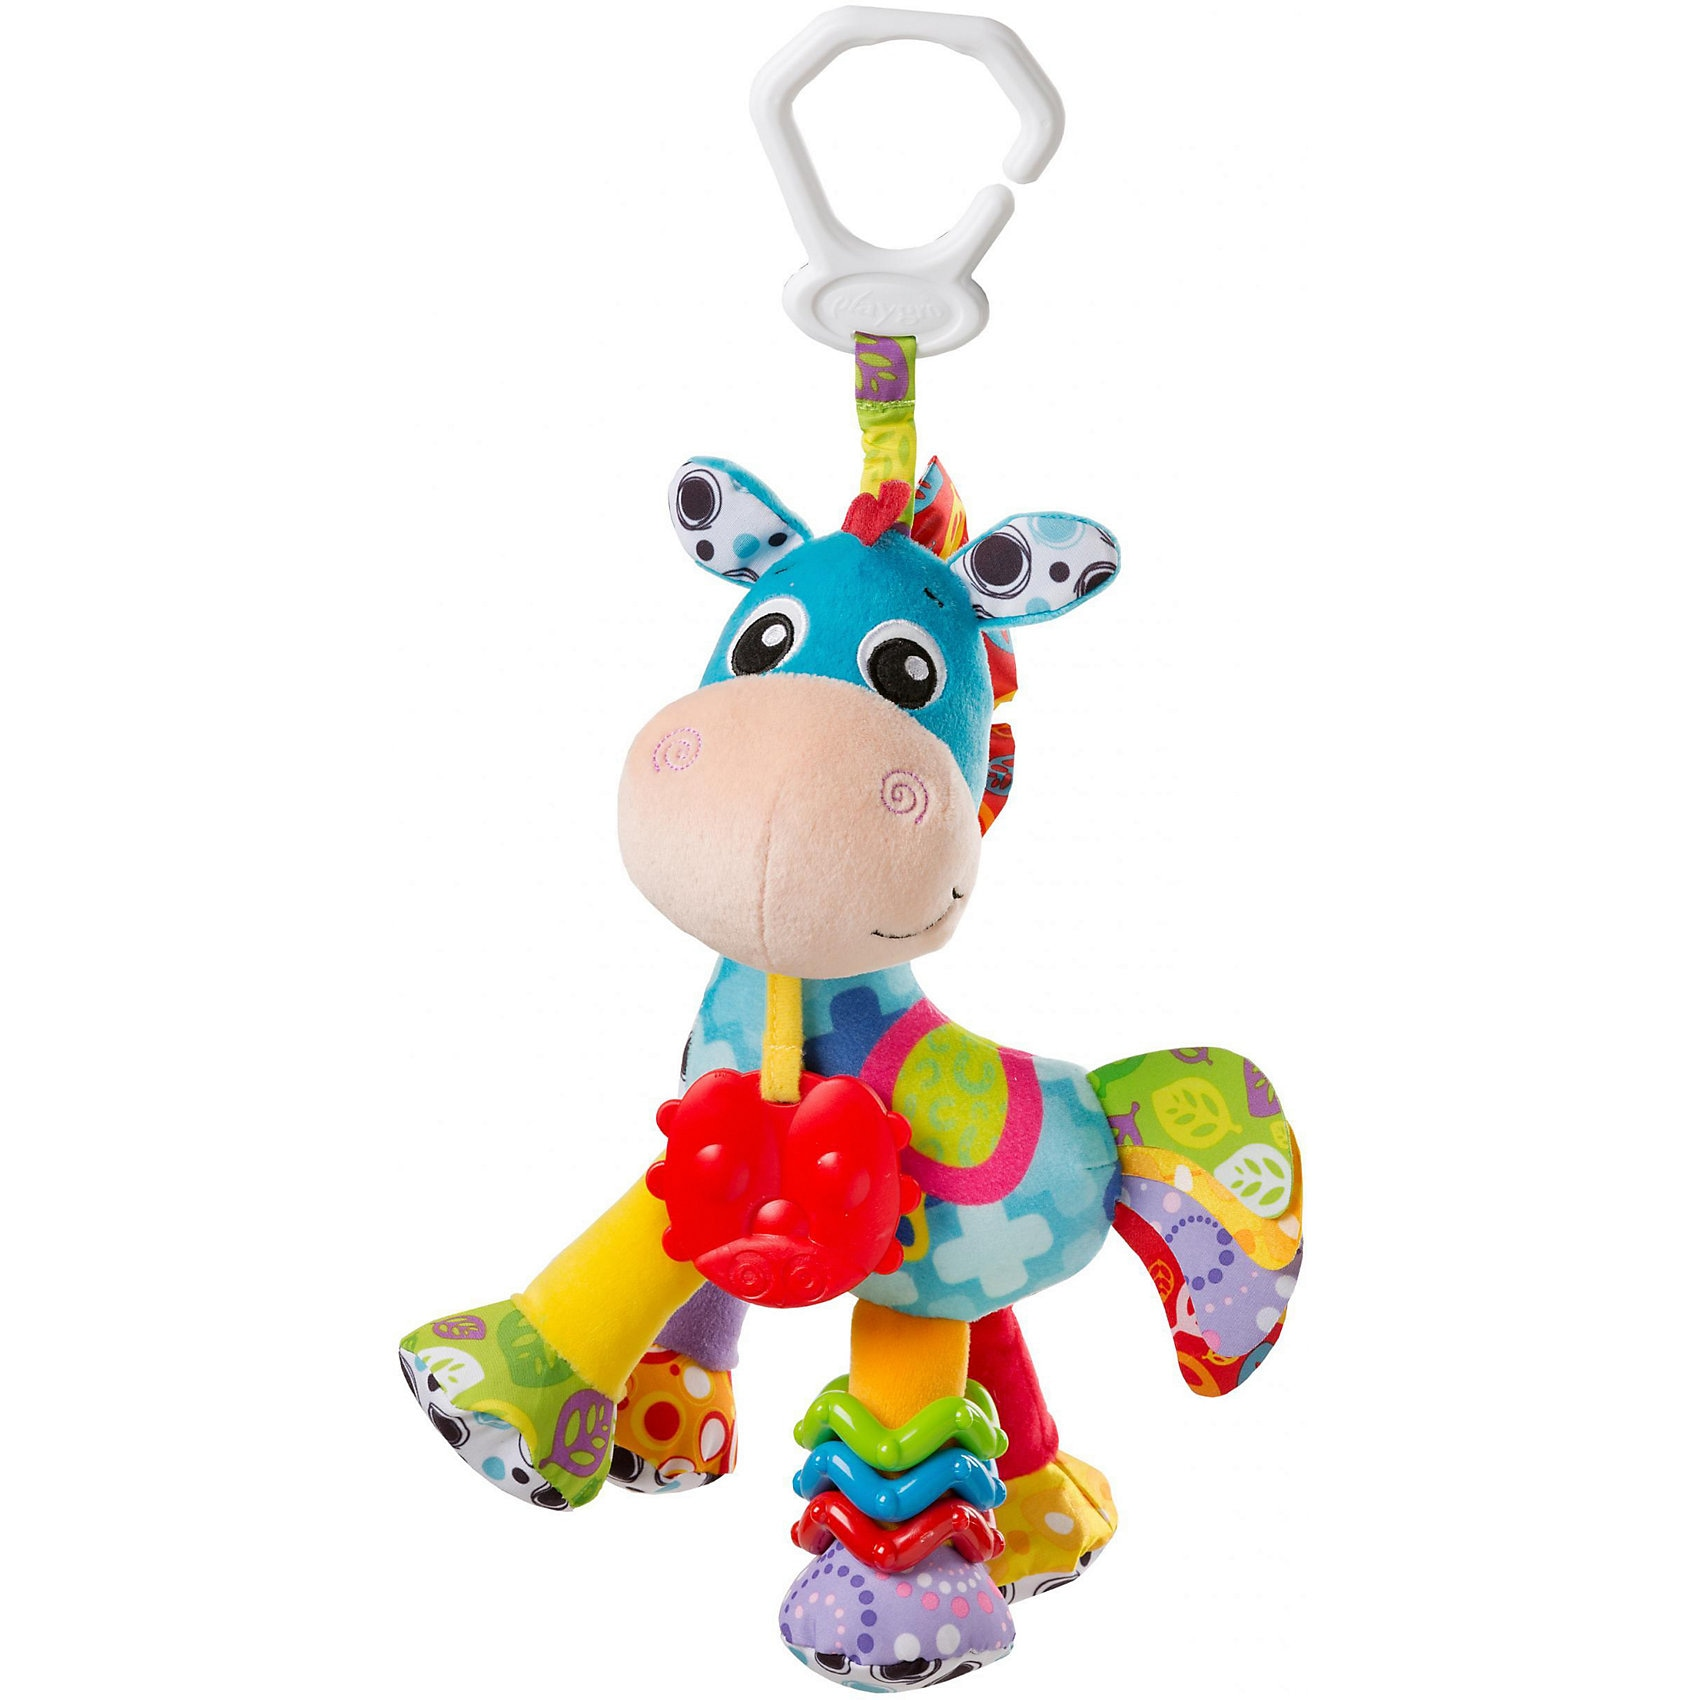 Playgro Activity Freund Pferd Klipp Klapp